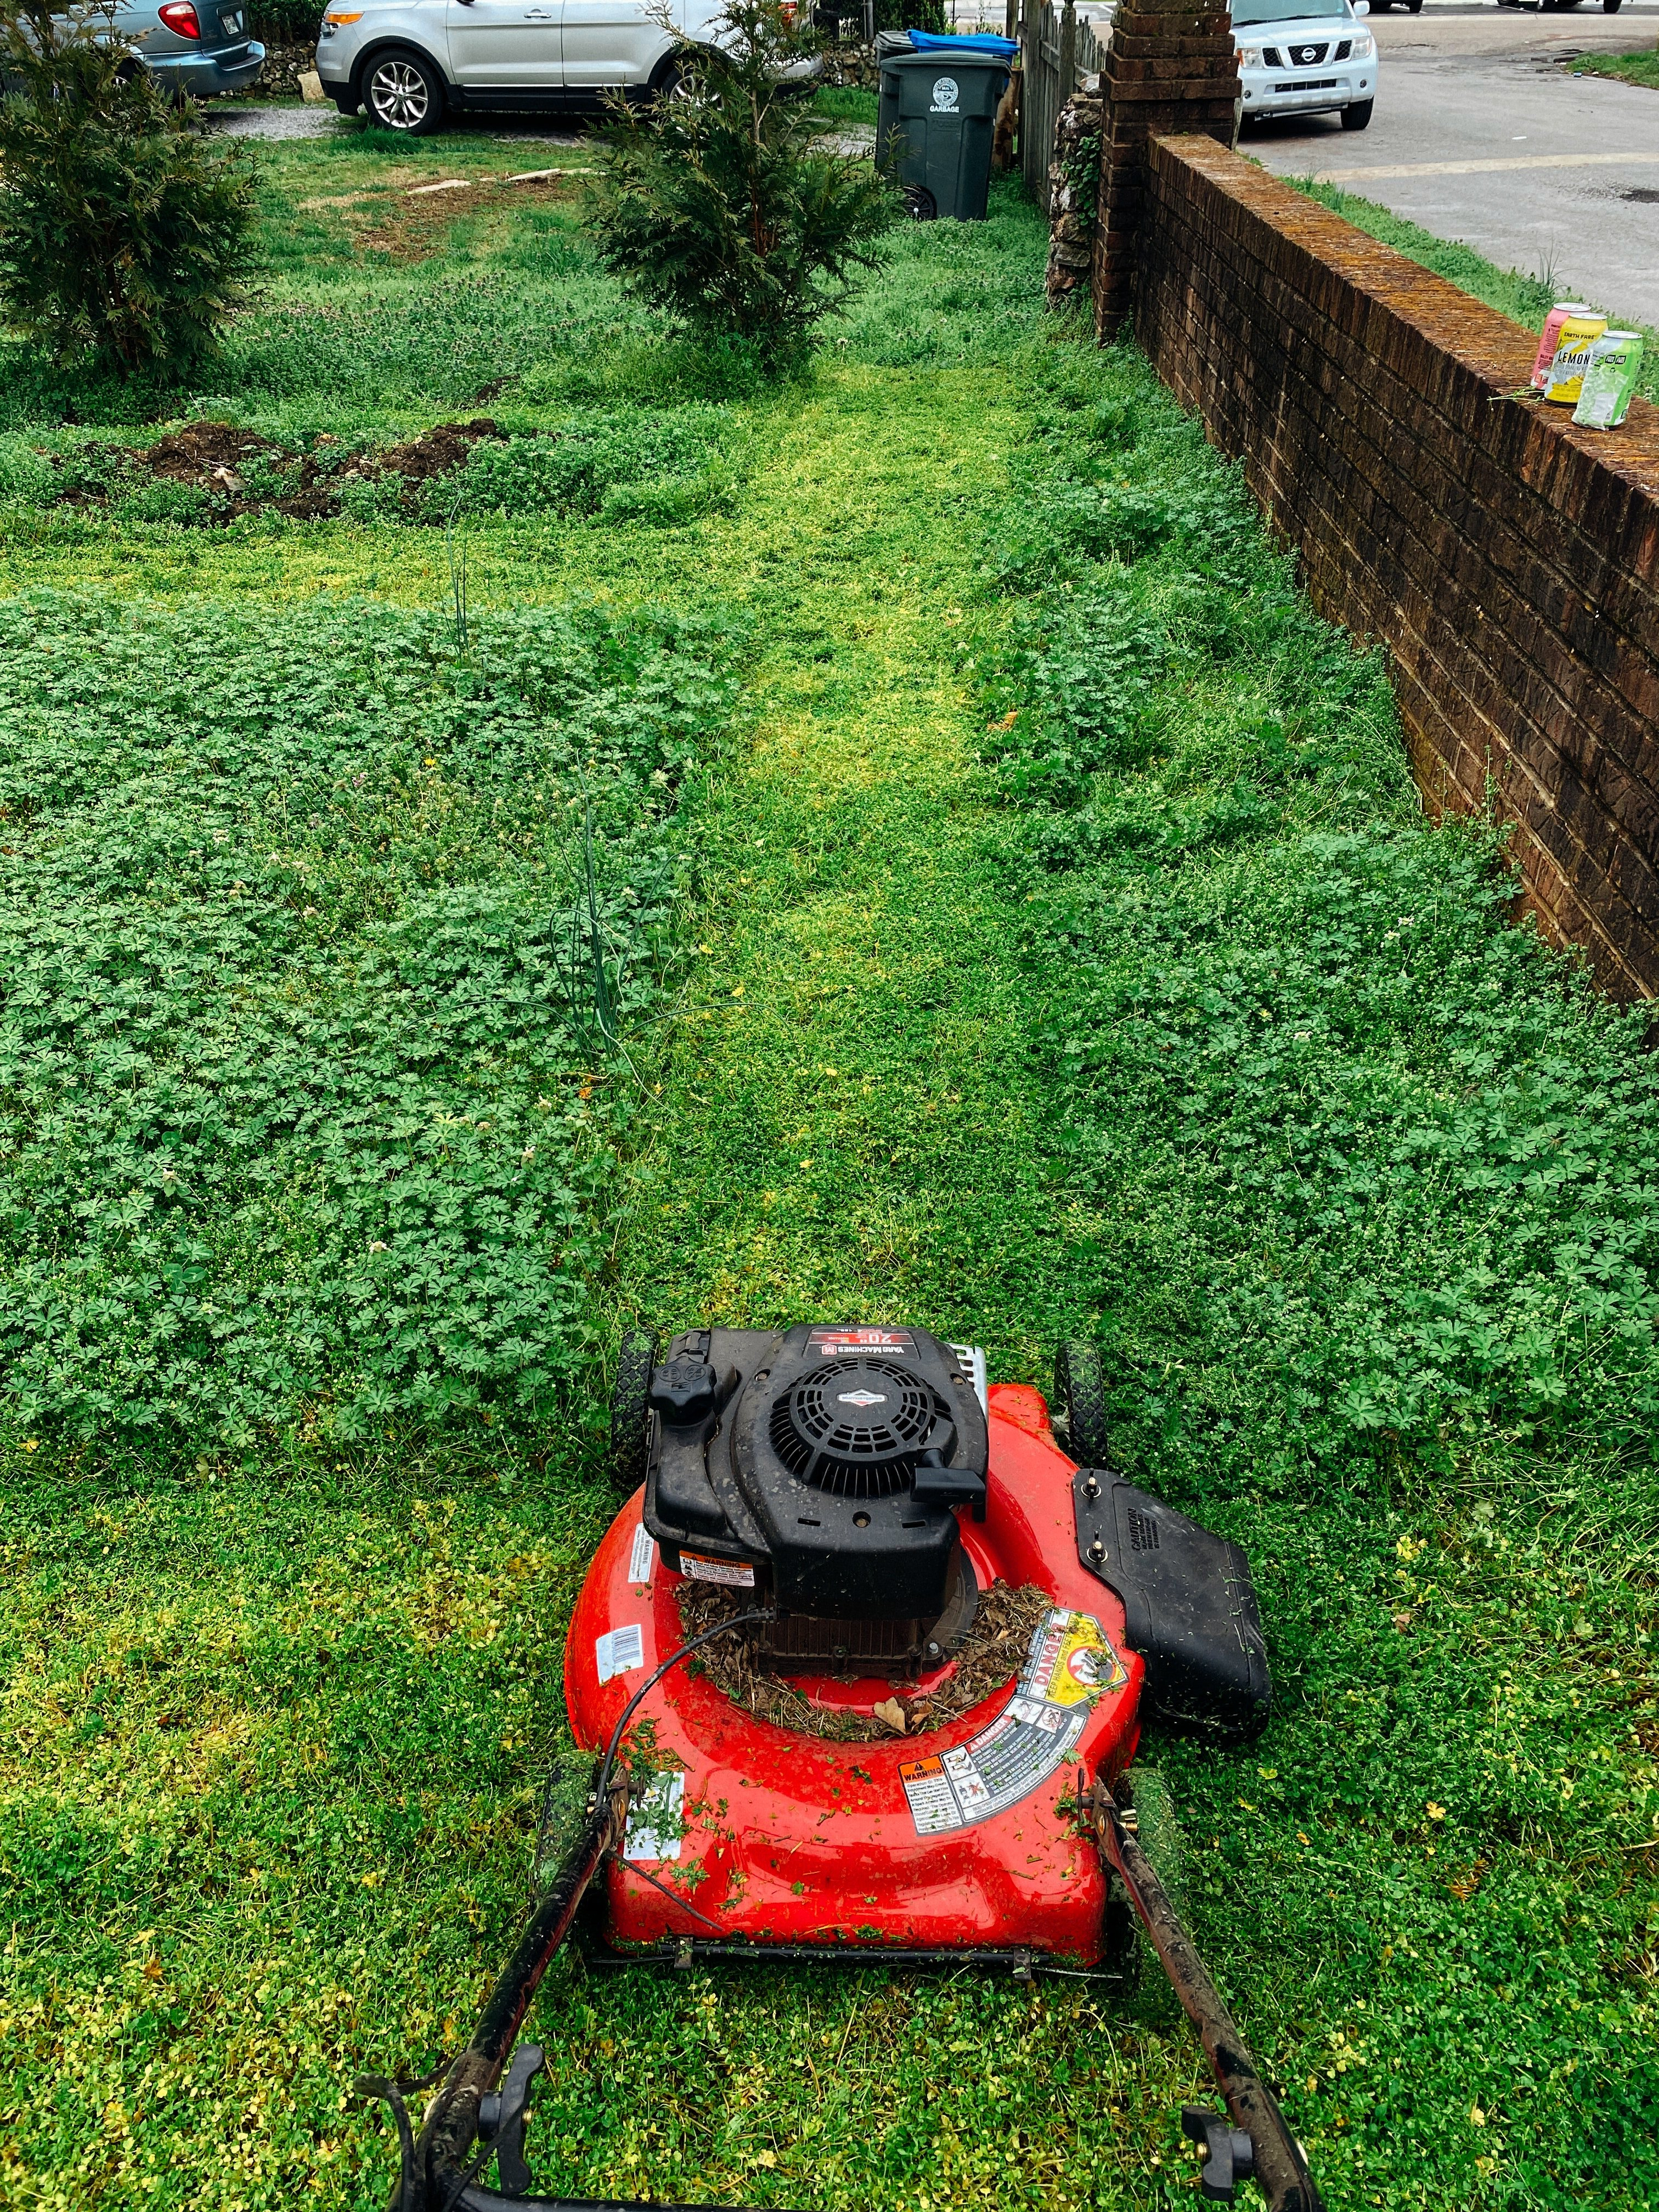 My wife kept hinting at me to get the lawnmower fixed, but I just couldn't find time. | Photo: Pexels